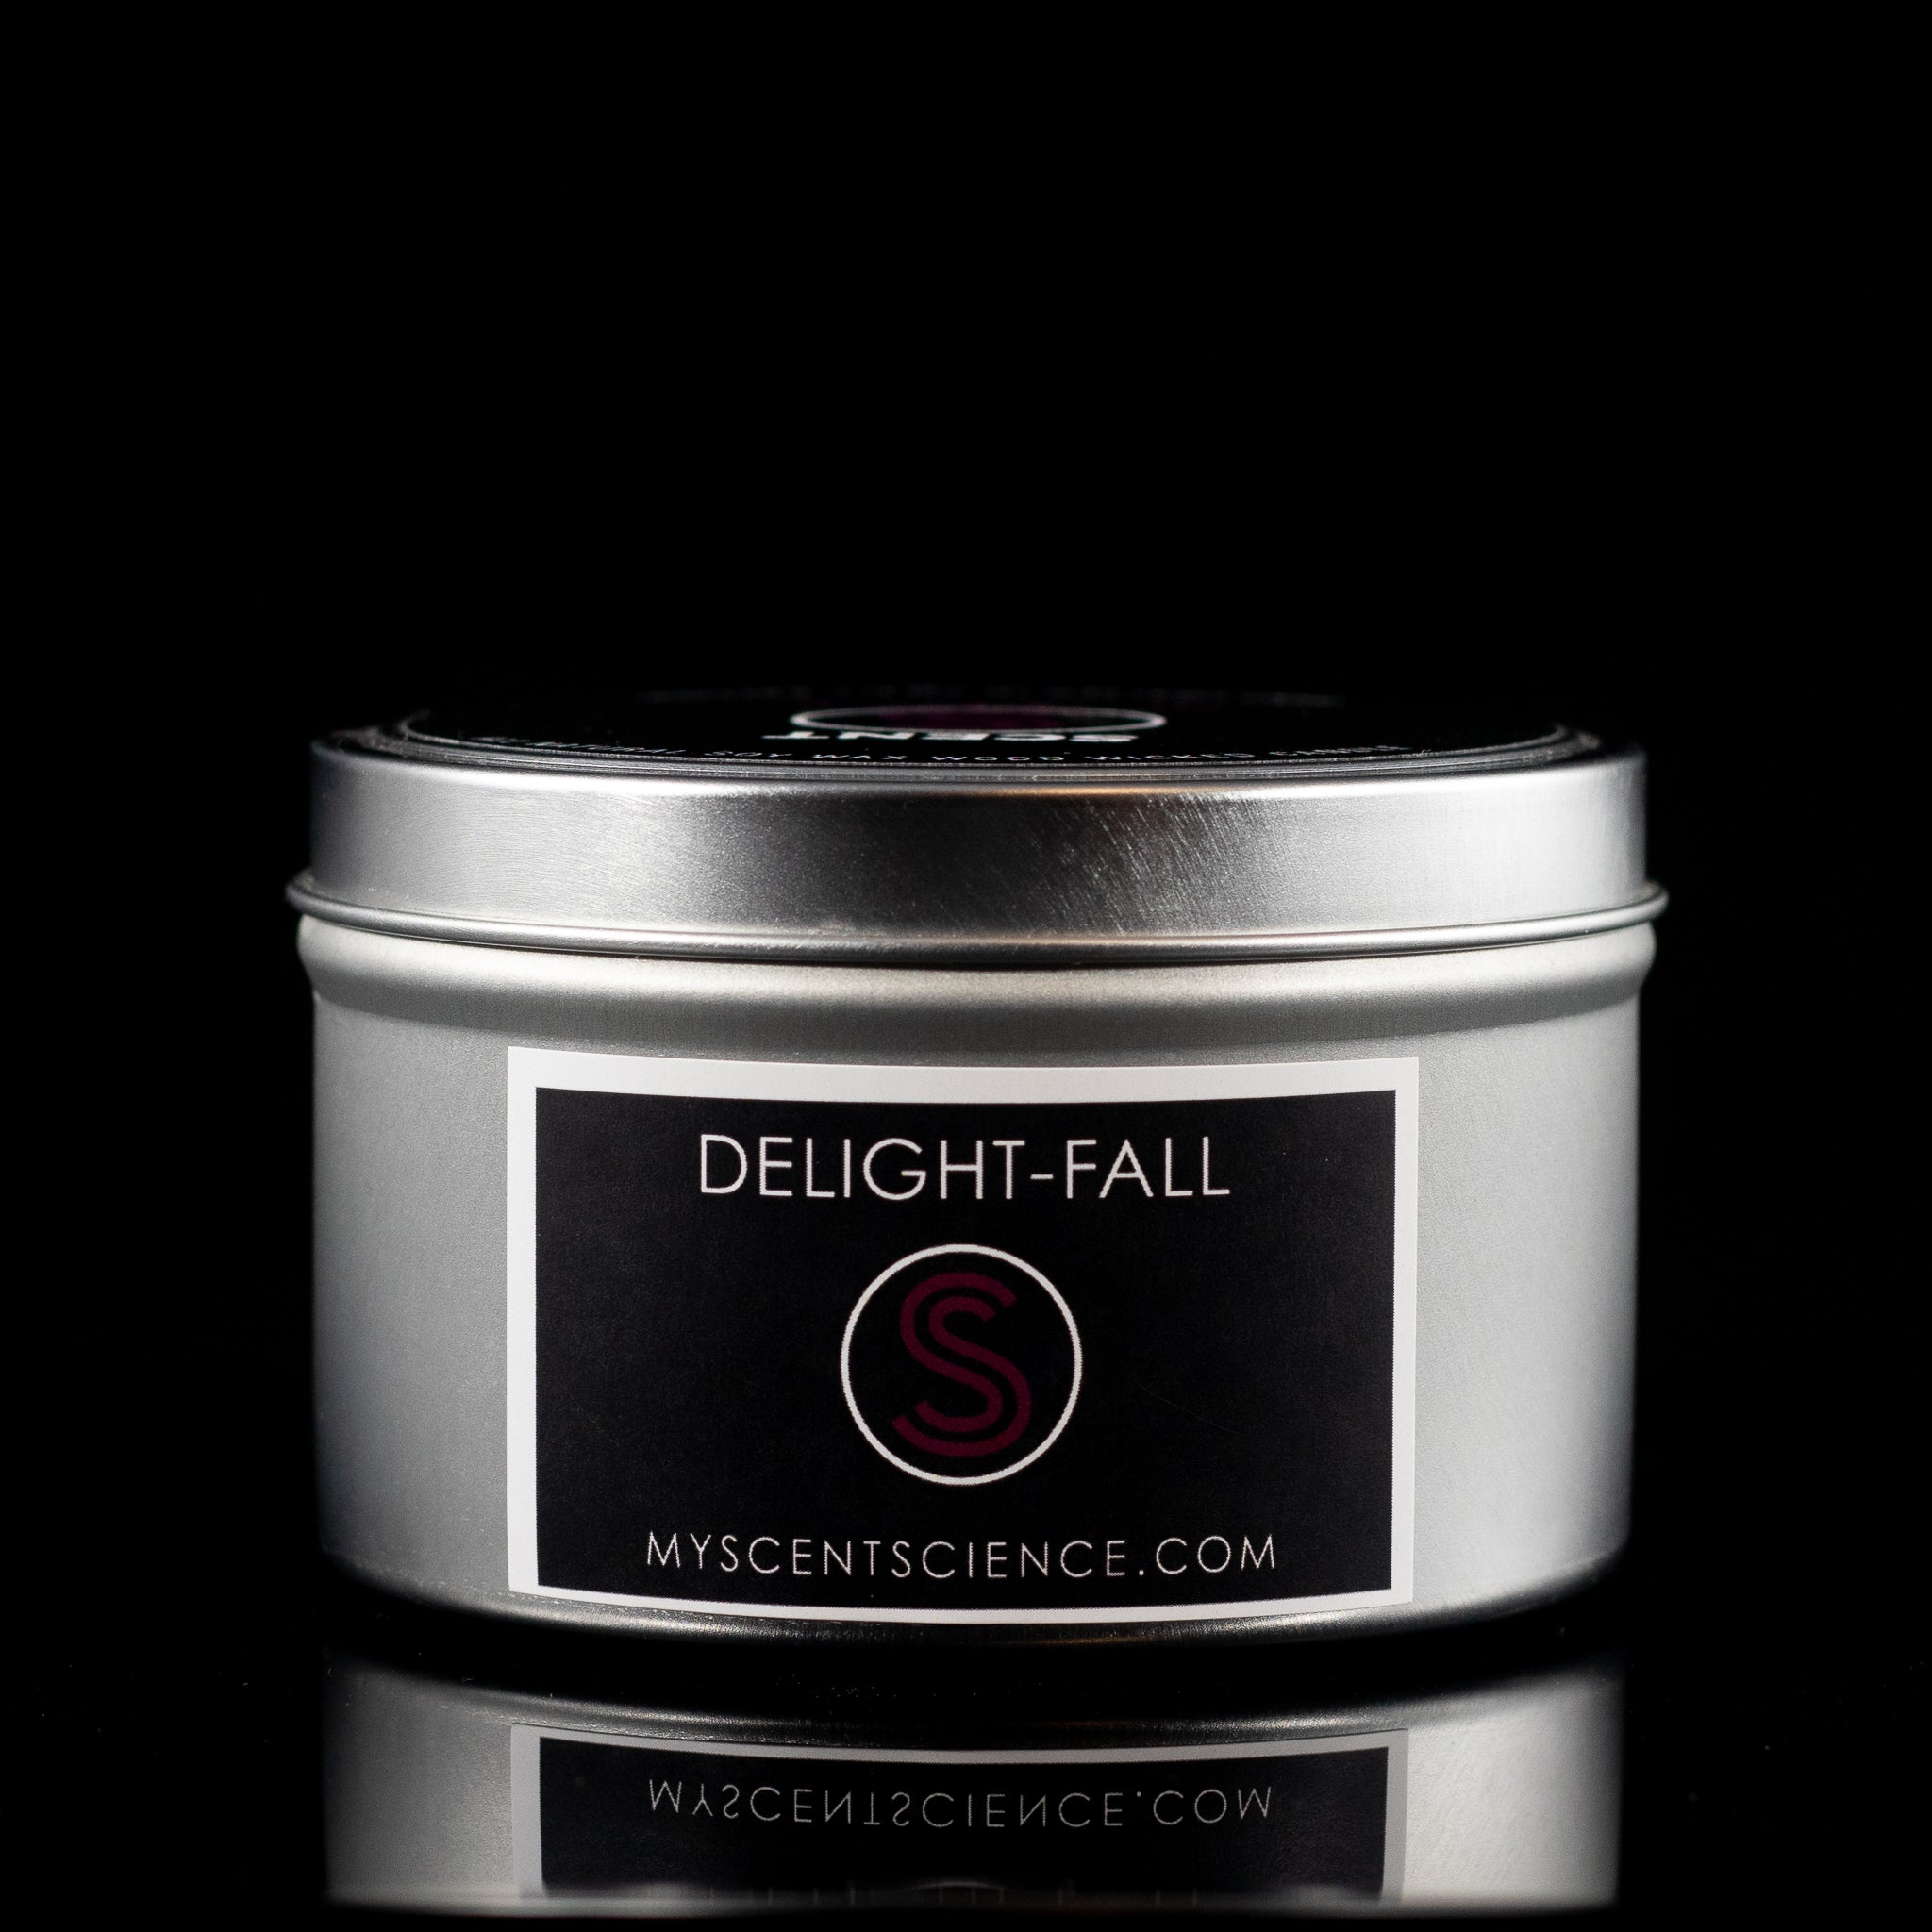 Delight-Fall Travel Tin